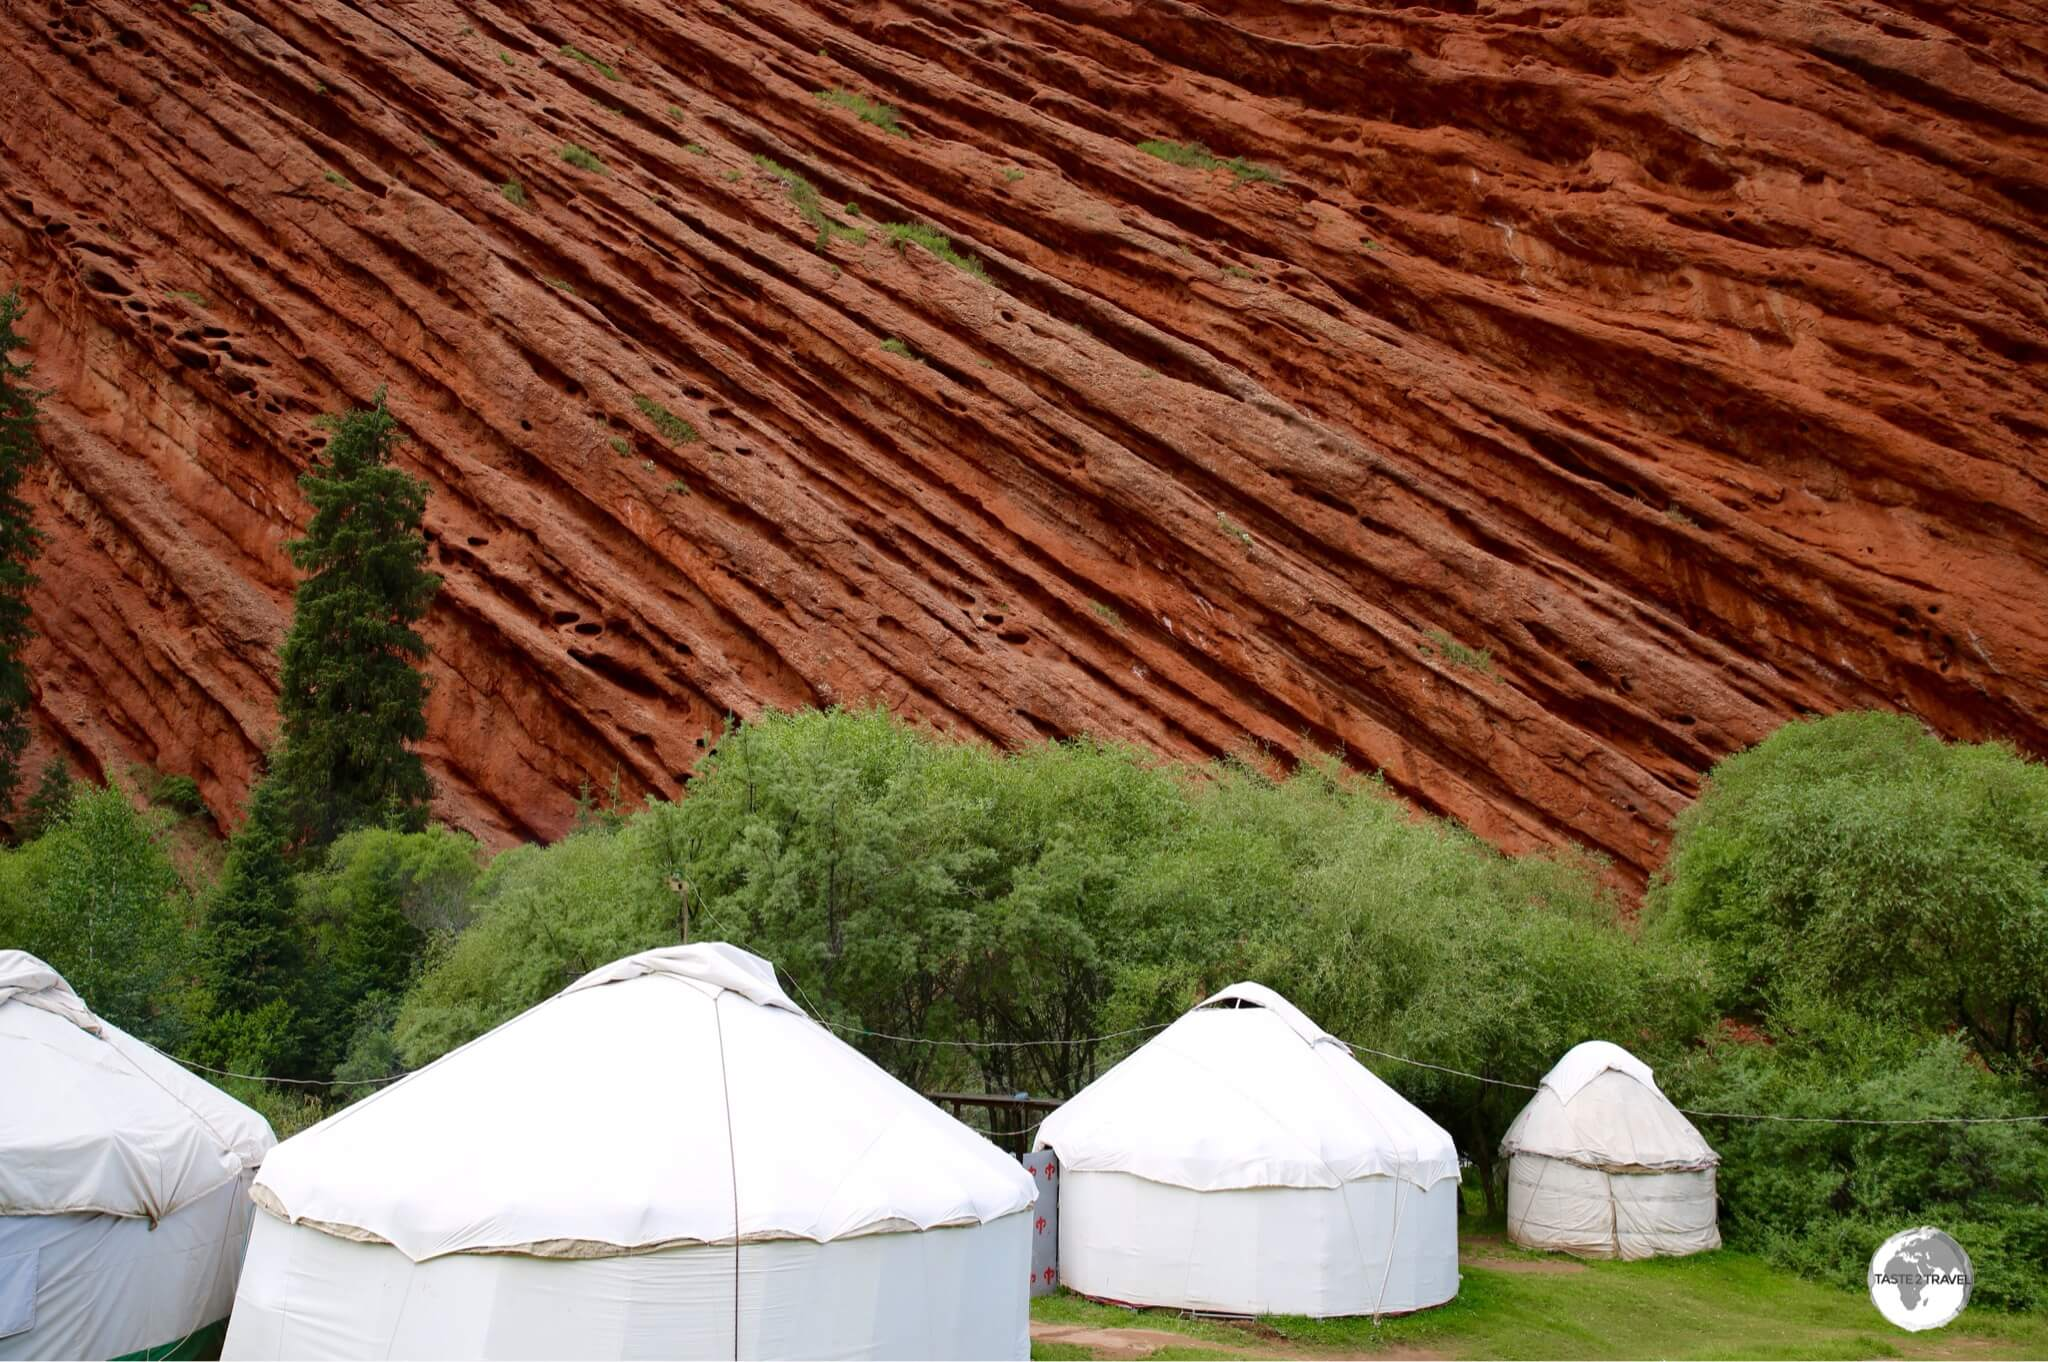 The ultimate wind barrier – a yurt camp, protected by the towering walls of the seven bulls.